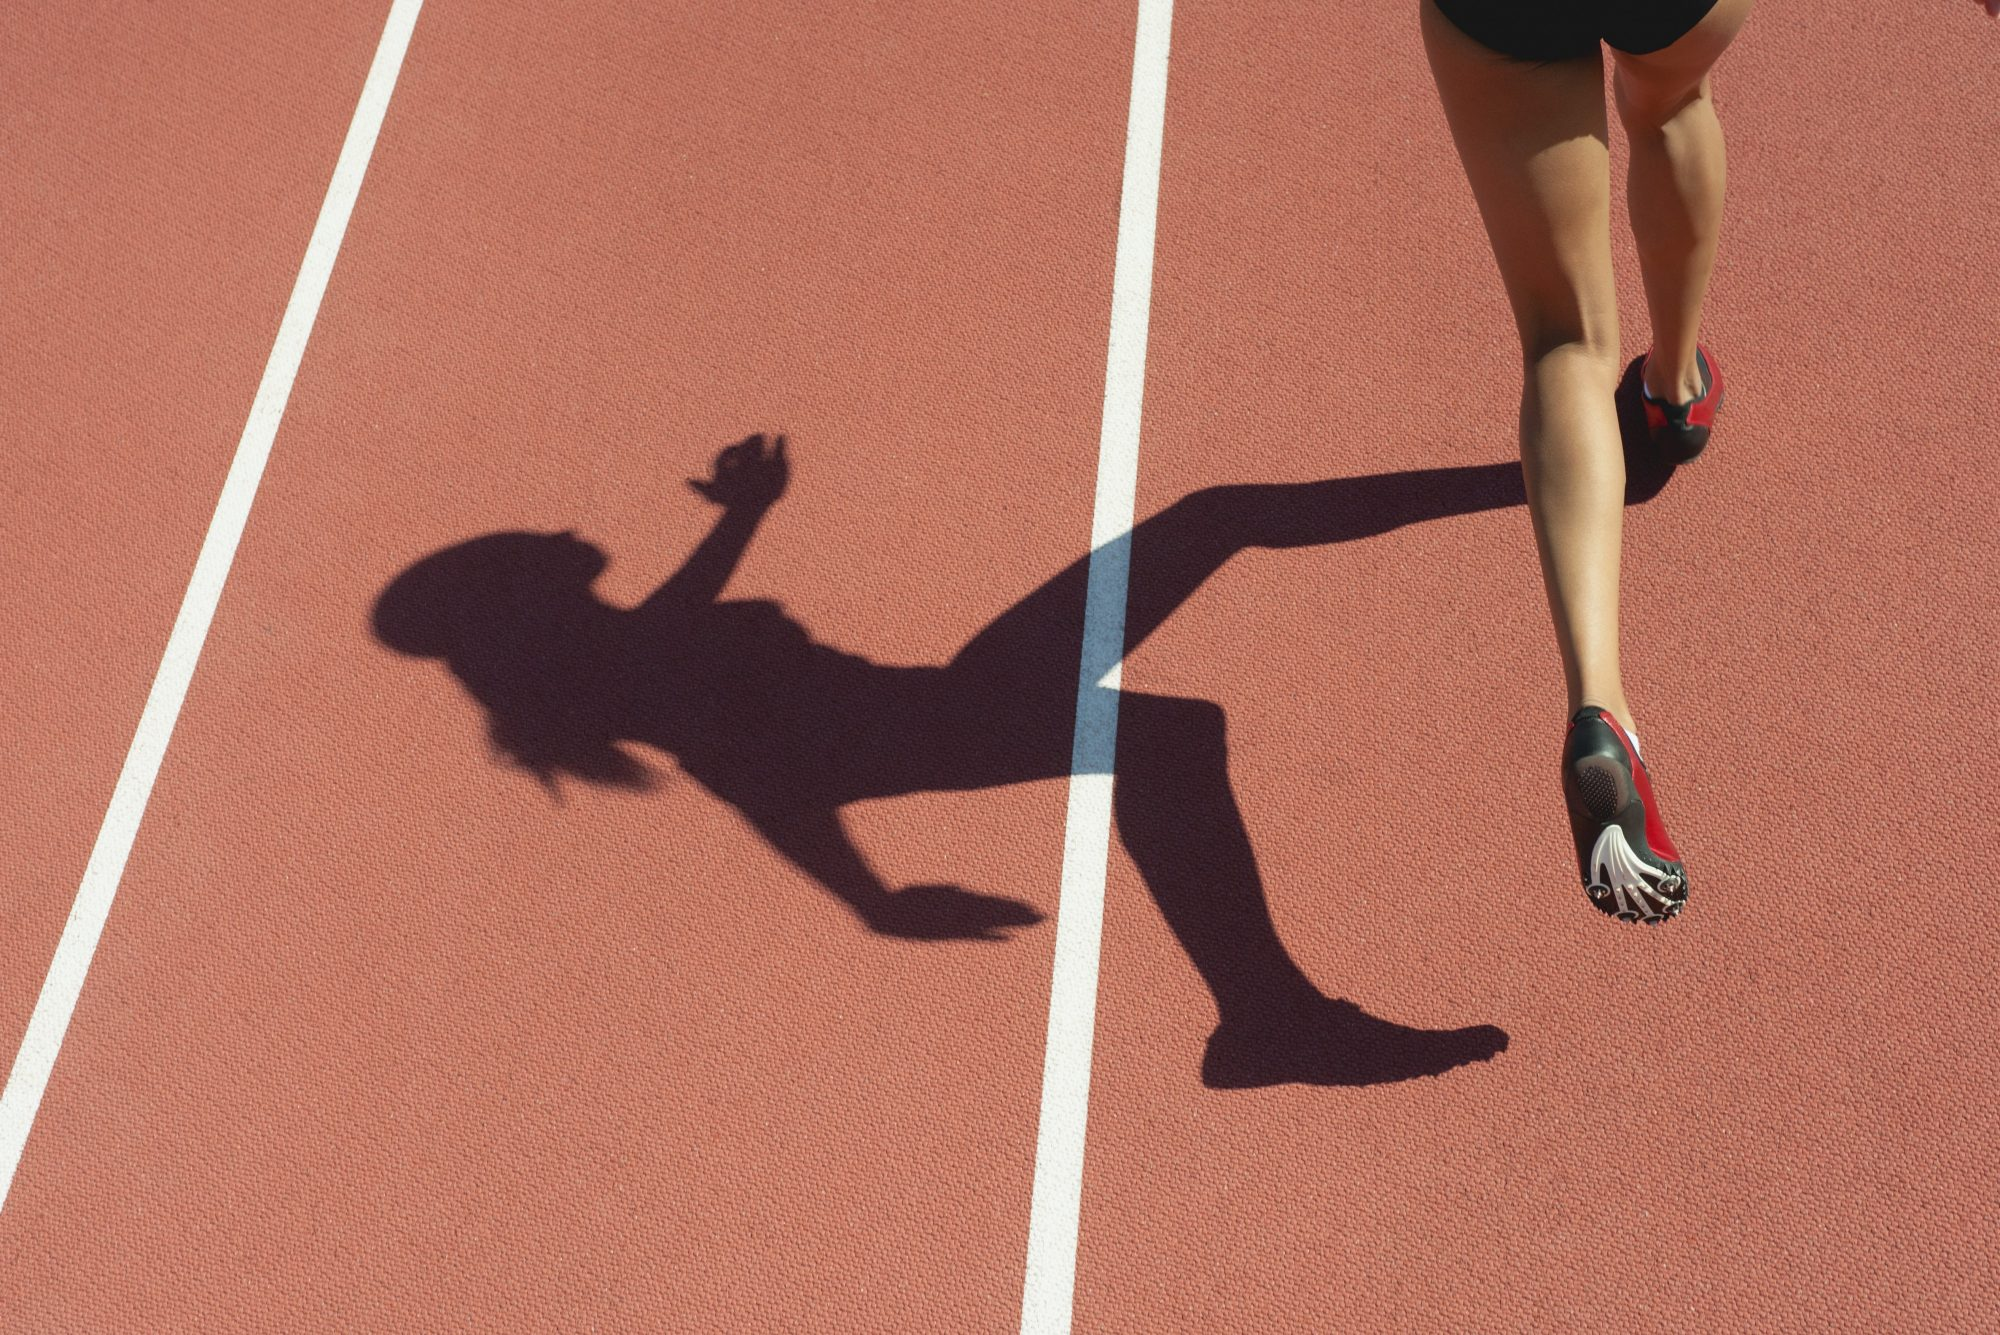 Female athlete running on track, low section, focus on shadow